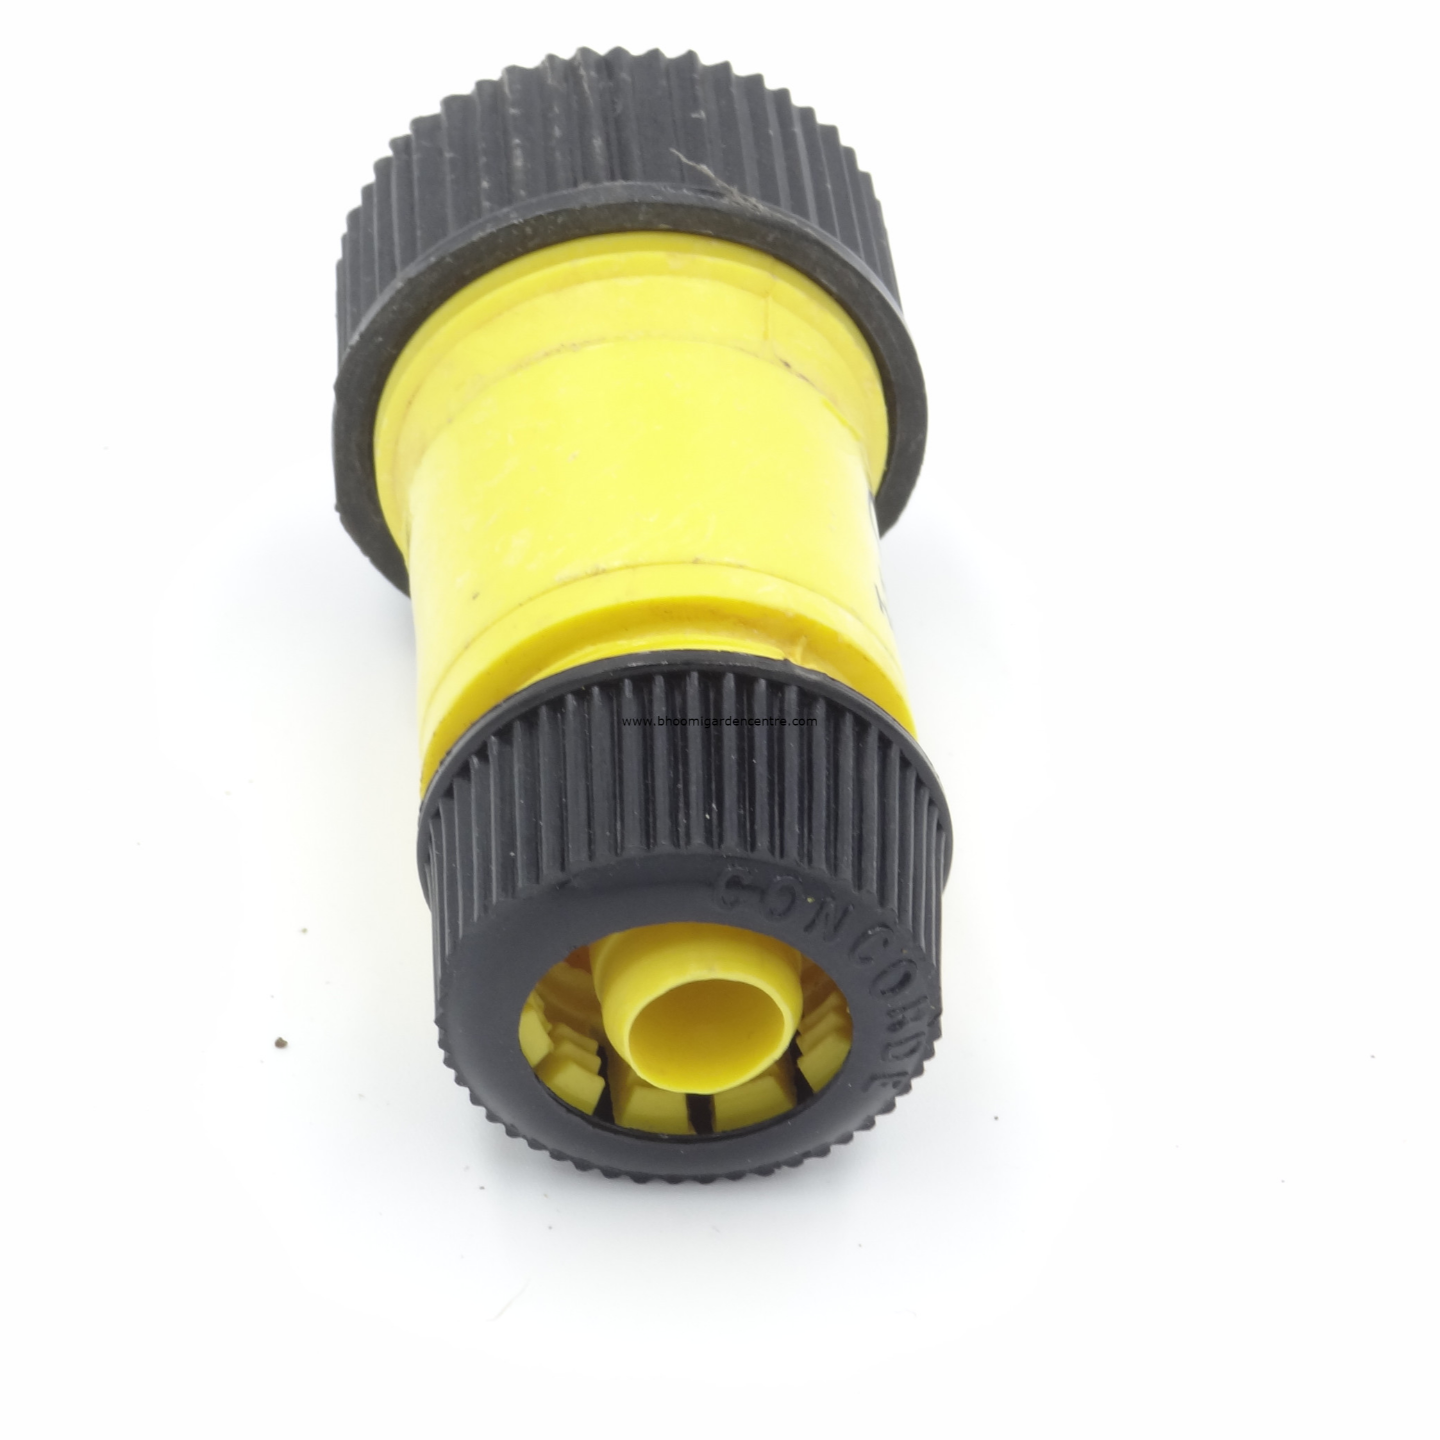 1/2 to 3/4 connector - Hose to Hose connector